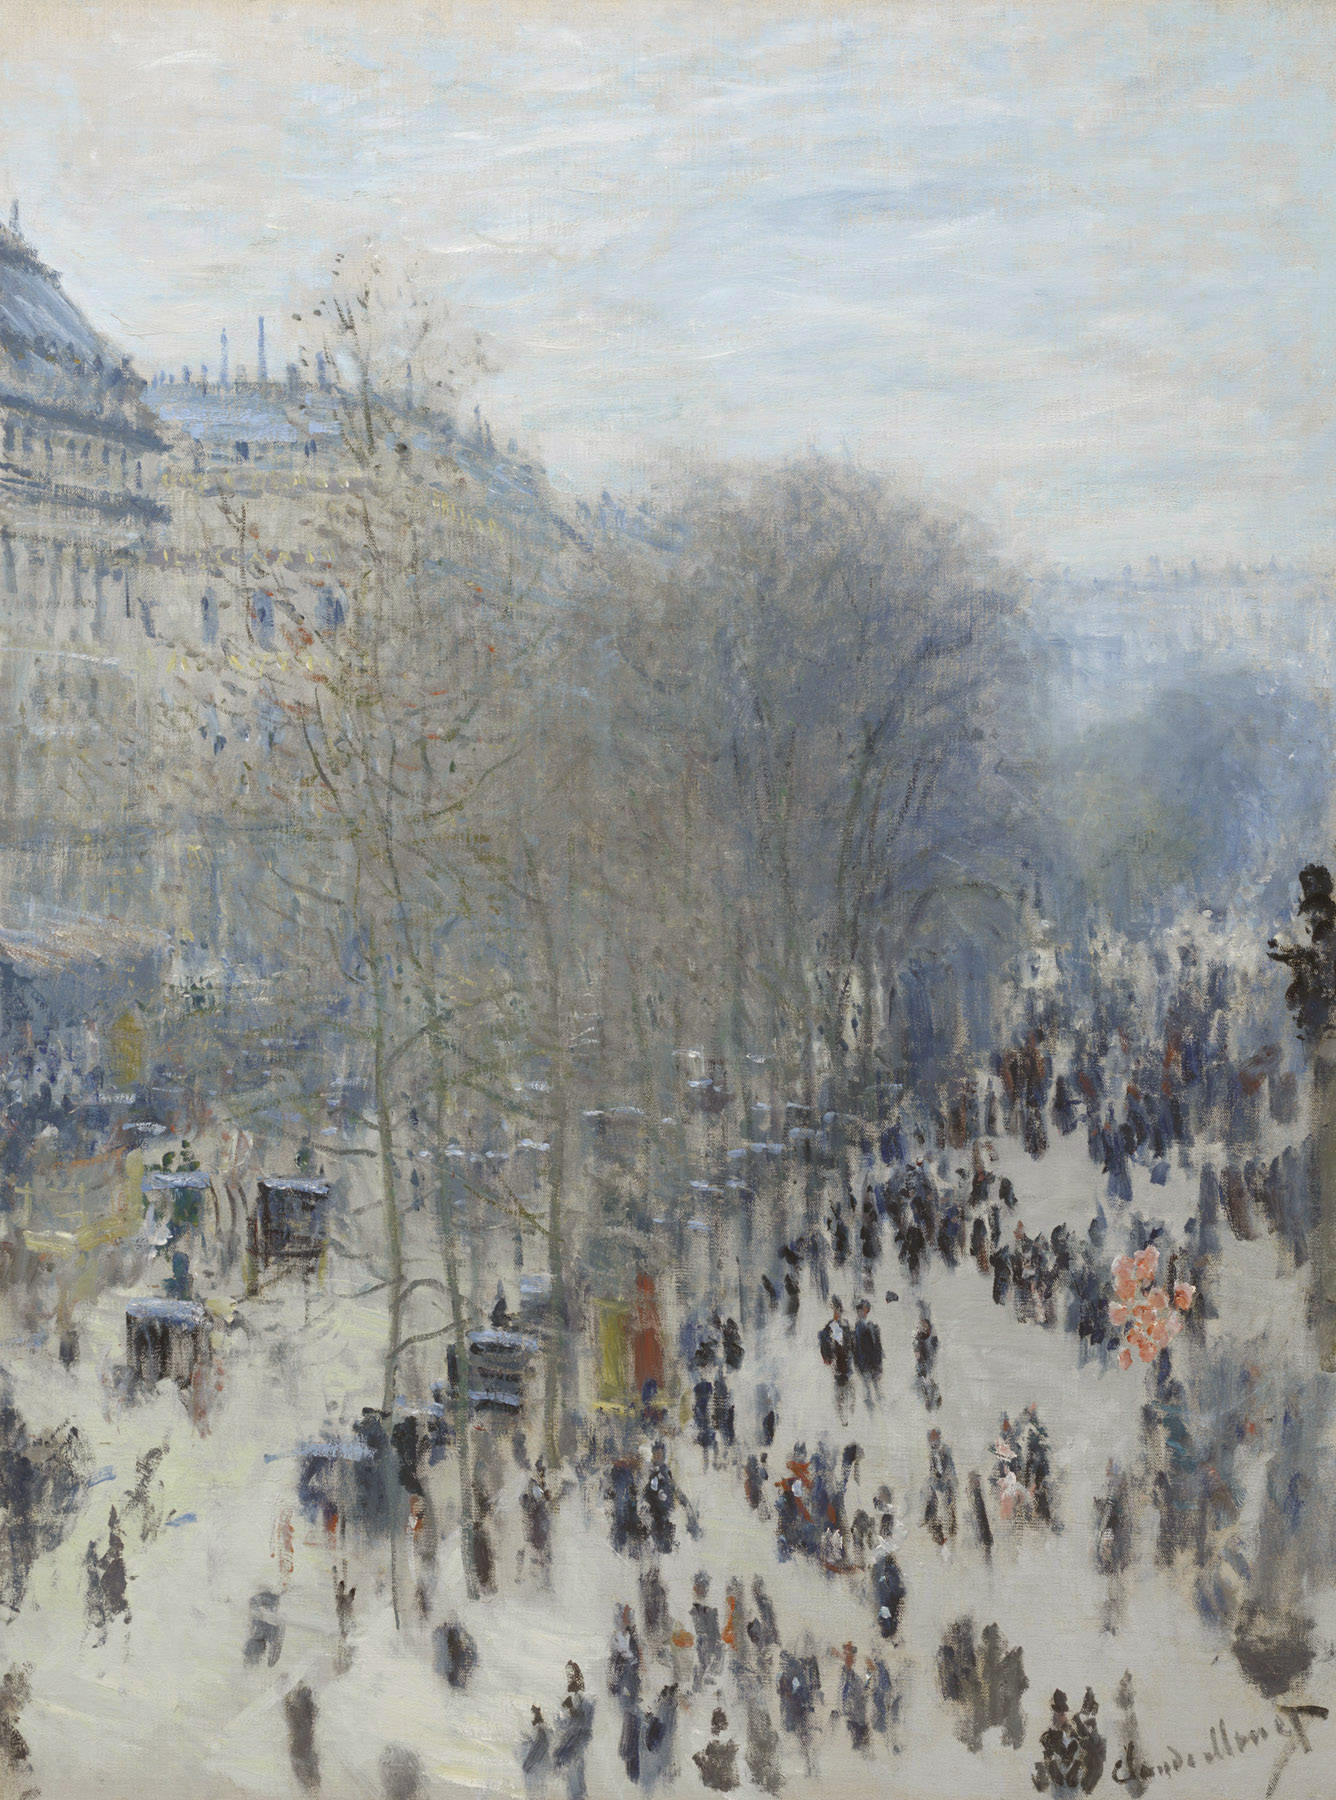 Claude_Monet,_1873-74,_Boulevard_des_Capucines,_oil_on_canvas,_80.3_x_60.3_cm,_Nelson-Atkins_Museum_of_Art,_Kansas_City